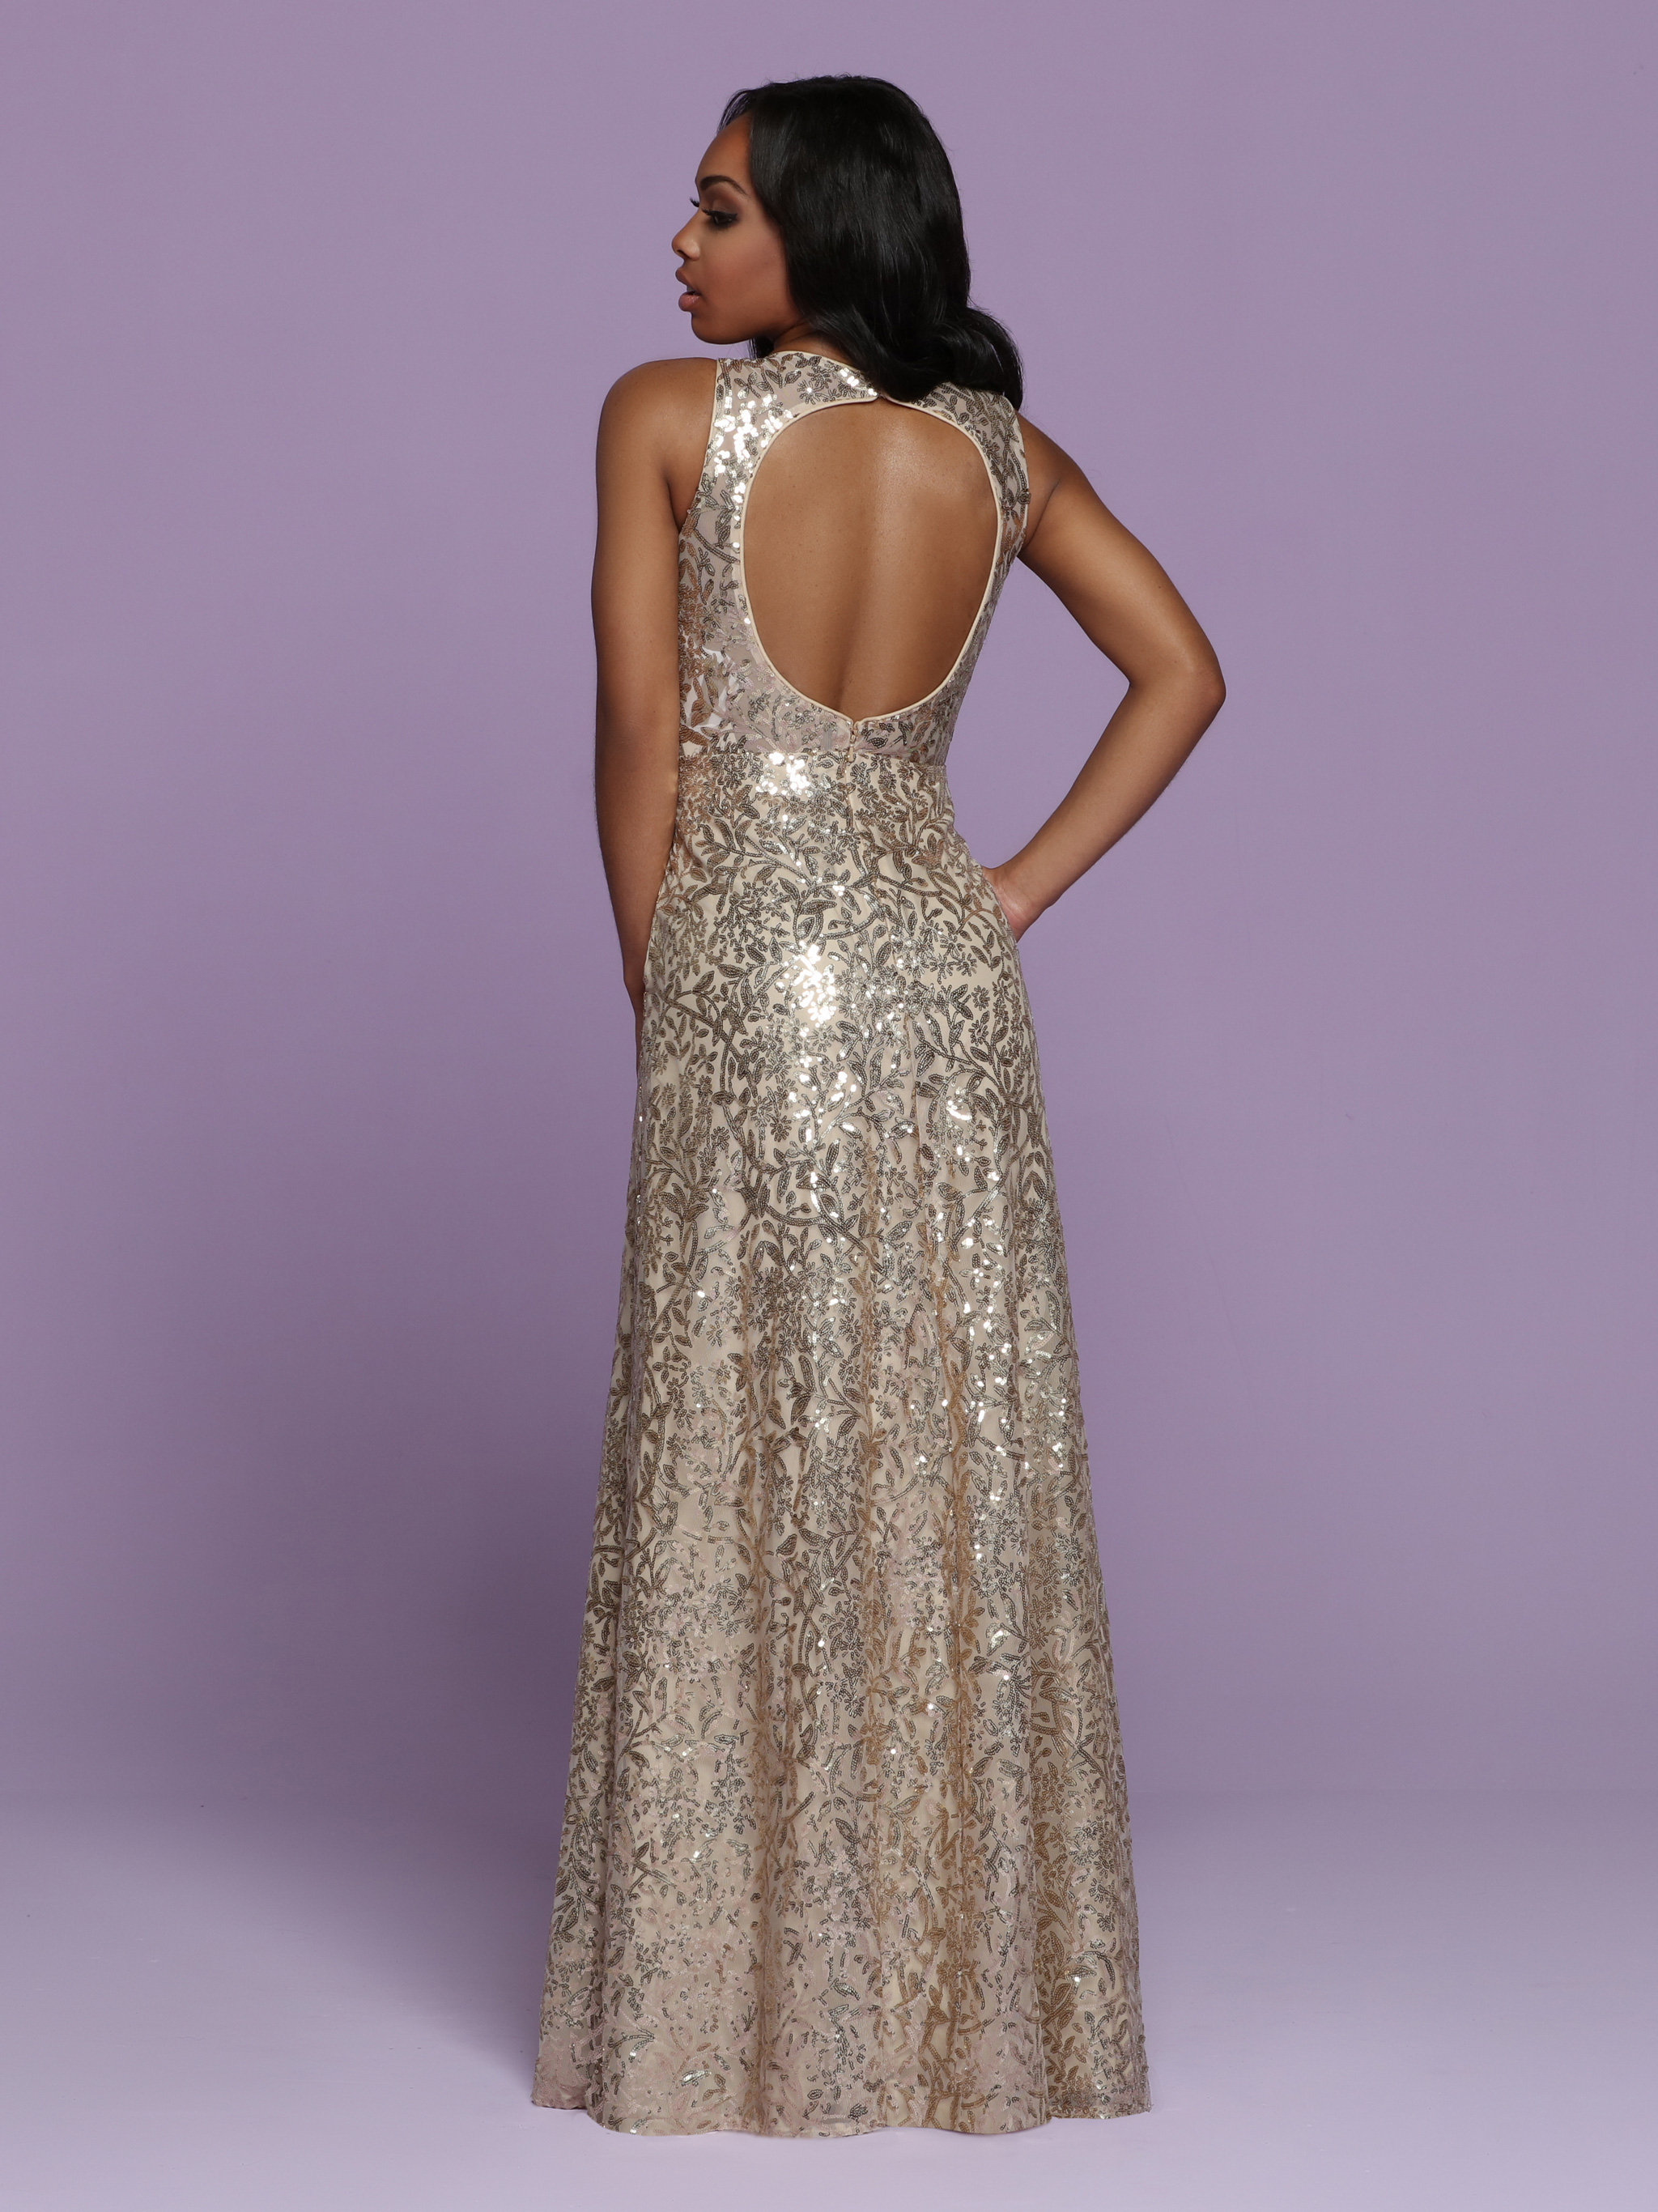 Image showing back view of style #72070